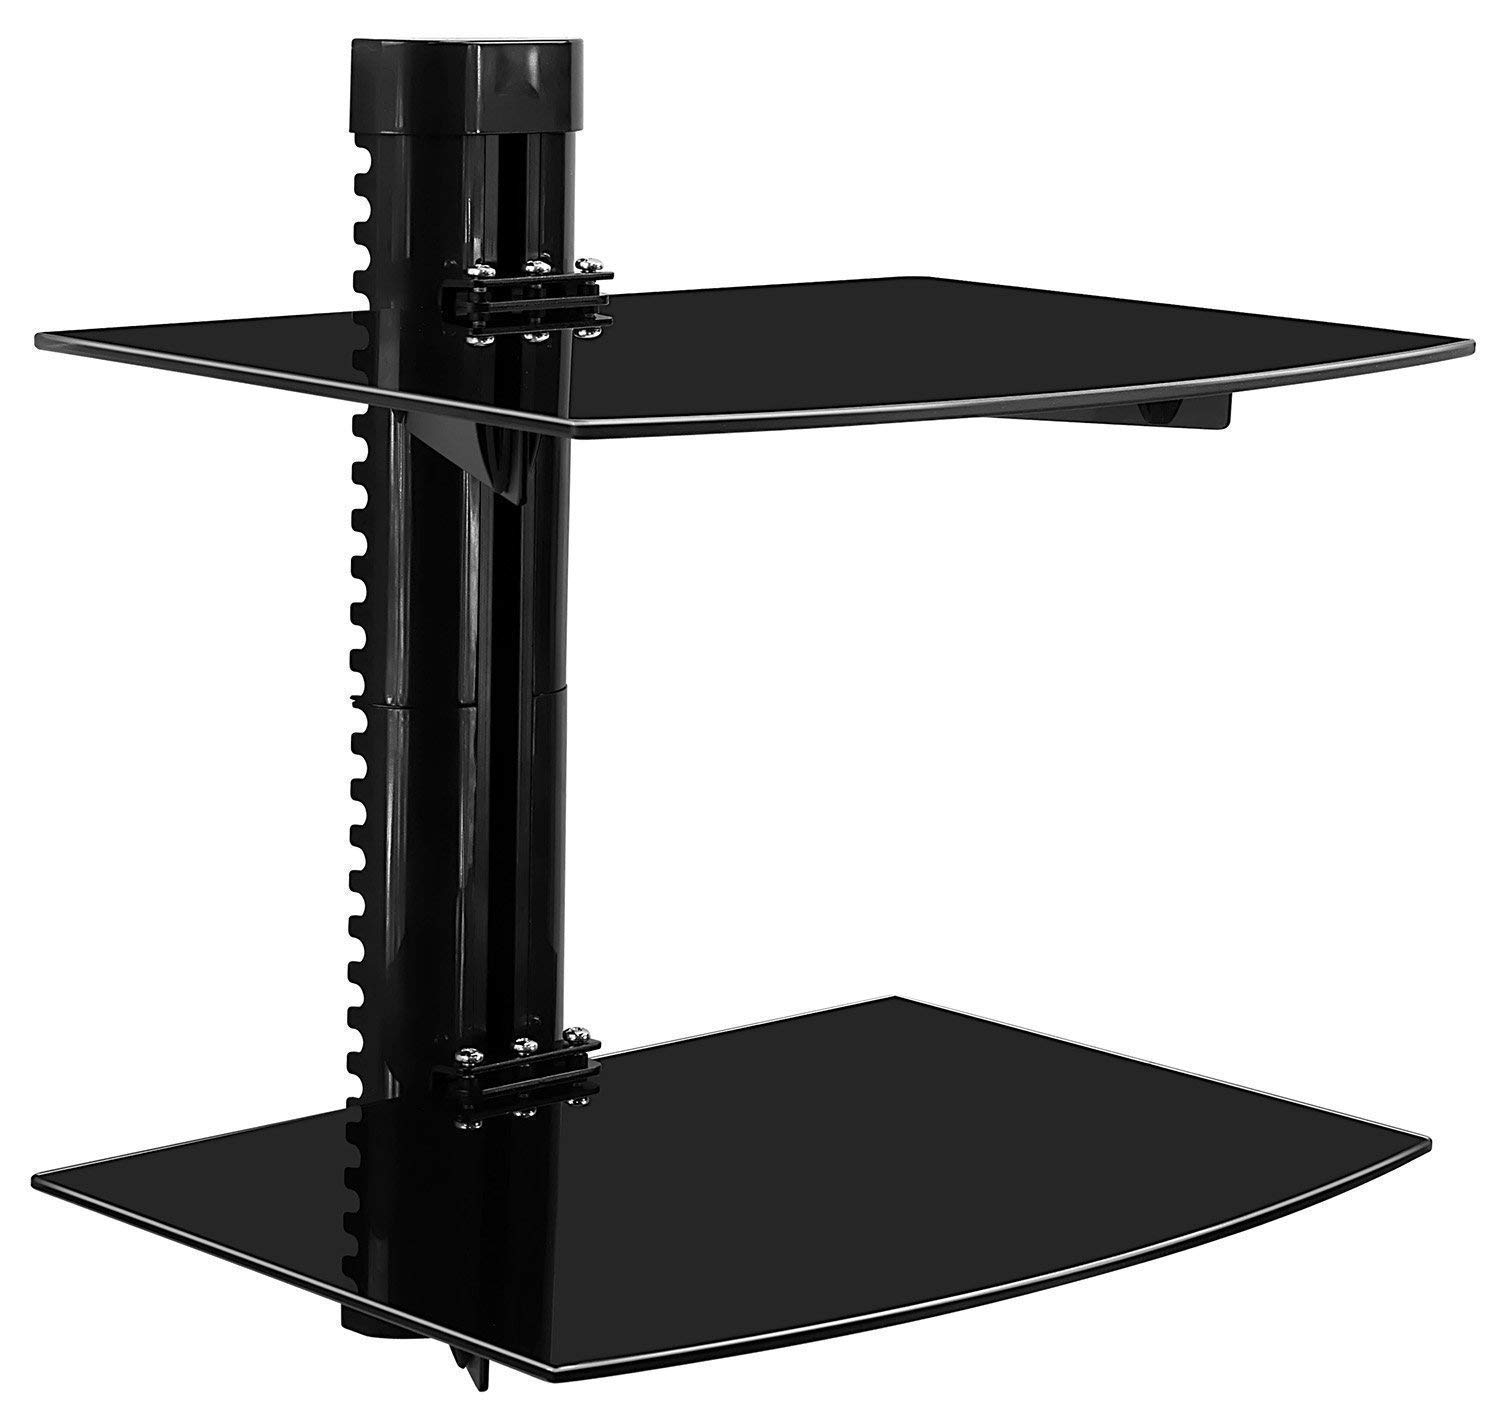 mount floating wall mounted shelf bracket stand for receiver component cable box dvd player projector lbs capacity marble fireplace mantel command hooks ikea floalt bedroom closet